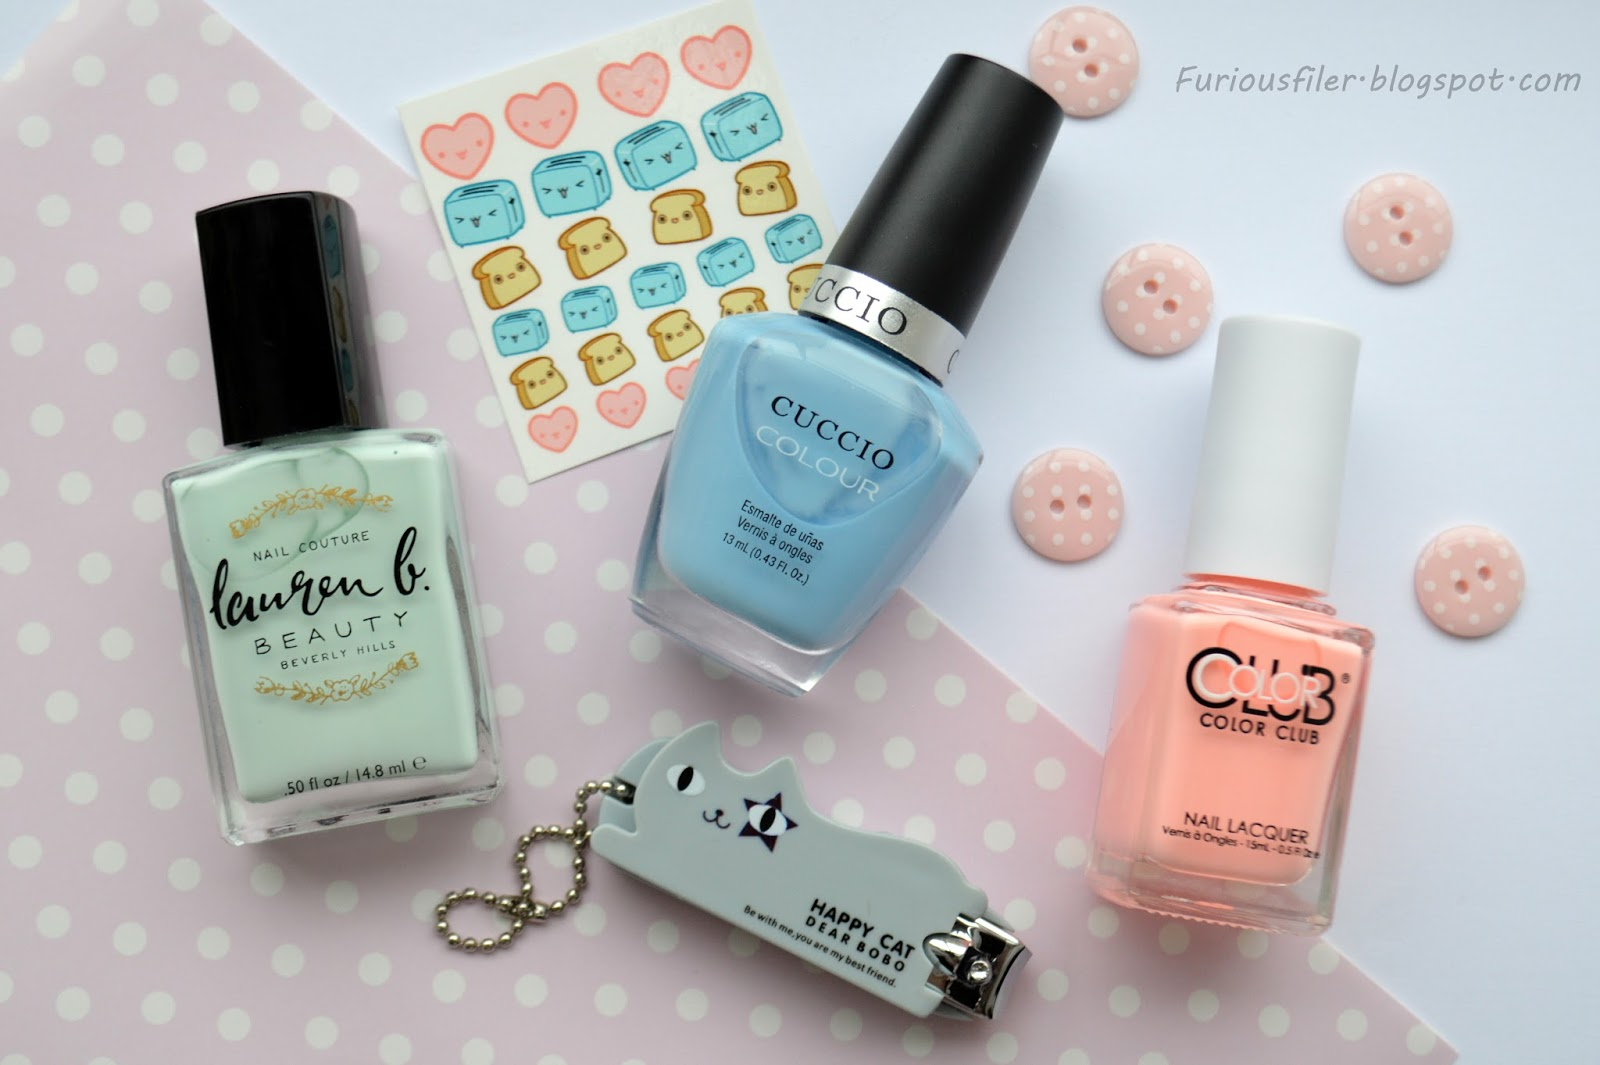 Kawaii MeeBox: Nail Art and Review - FURIOUS FILER